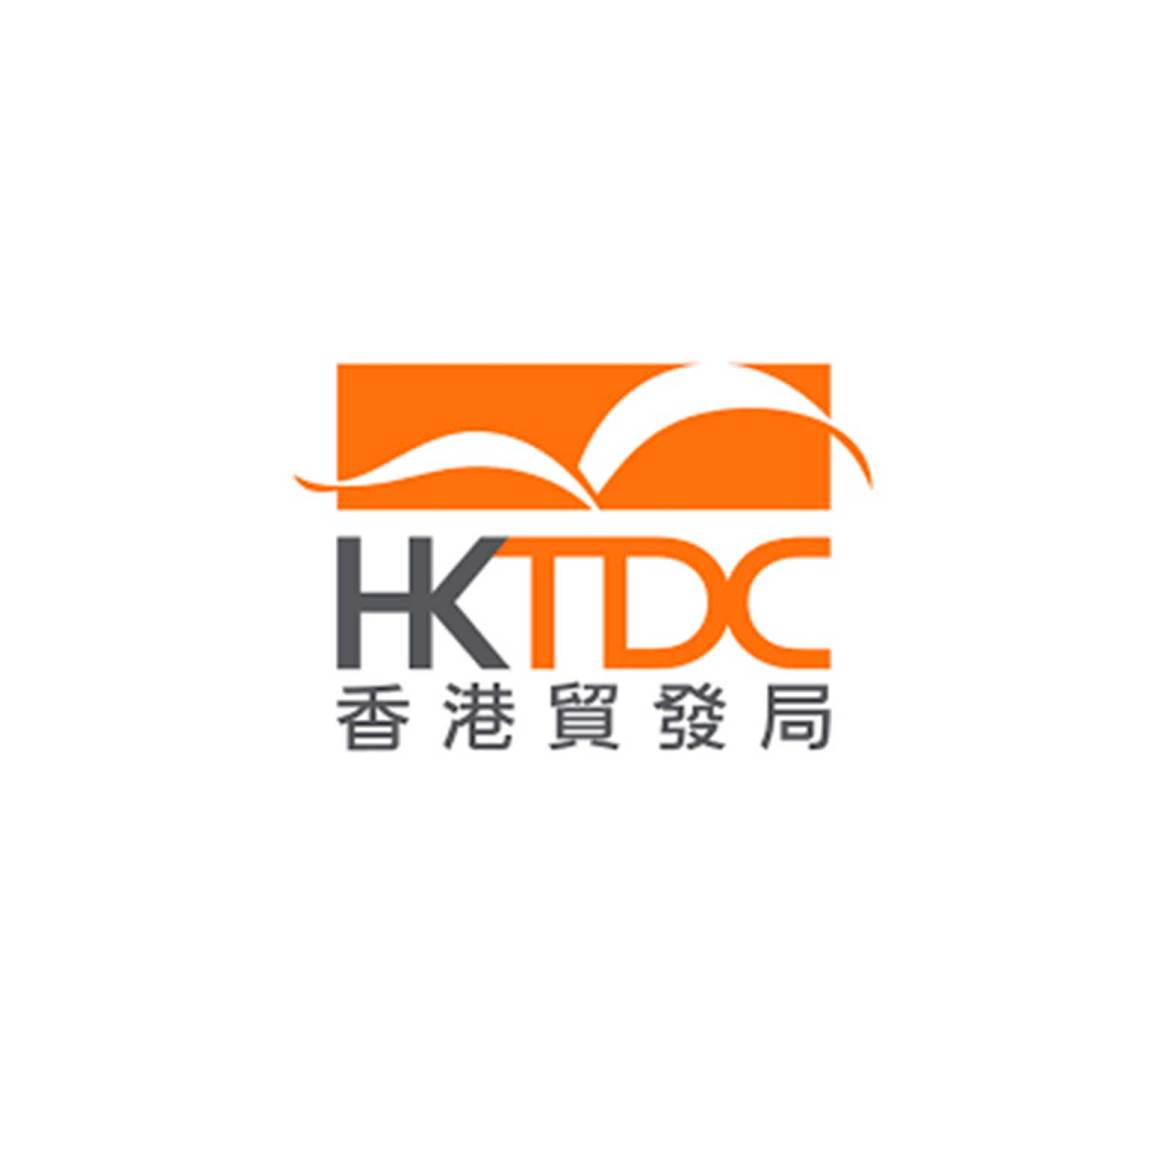 Hong Kong Trade  and Development Council  (HKTDC)